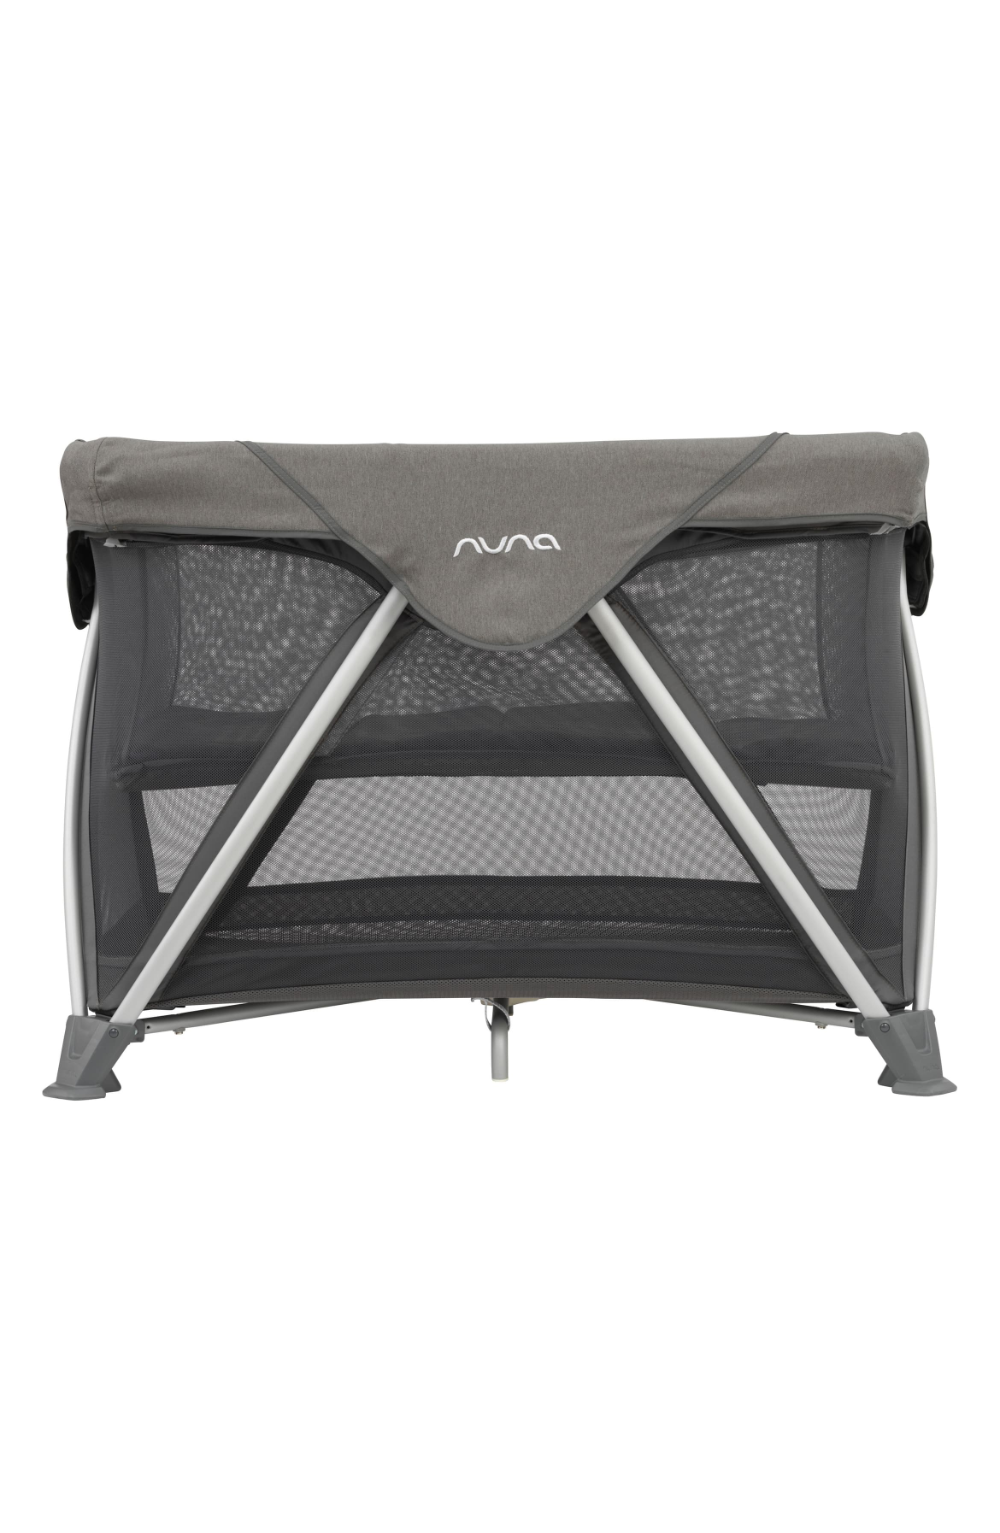 nuna SENA® Aire Travel Crib Nordstrom in 2020 Travel